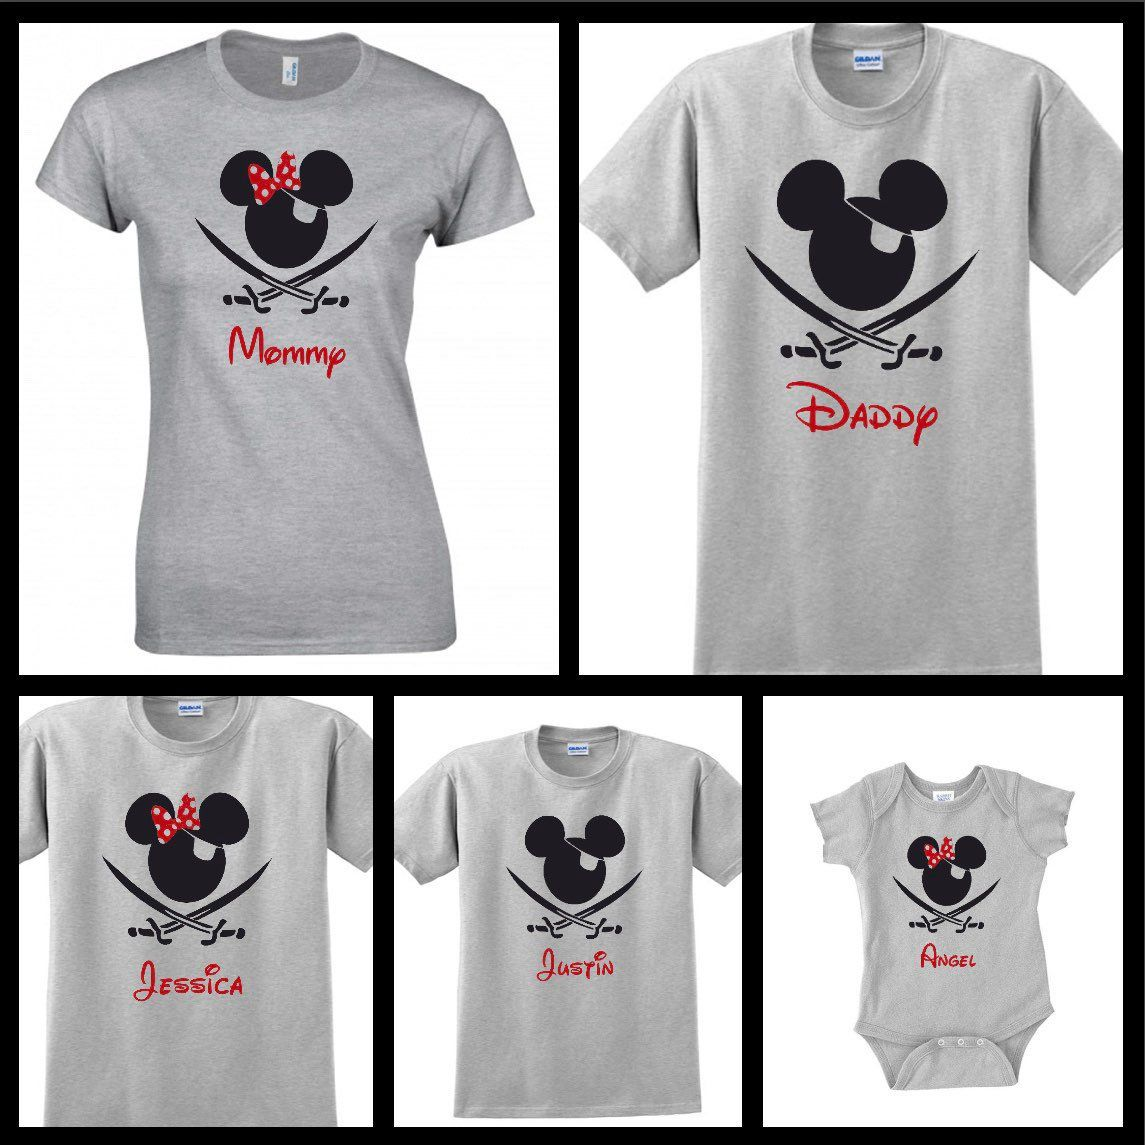 e63d1c4201 Disney Pirate Shirt